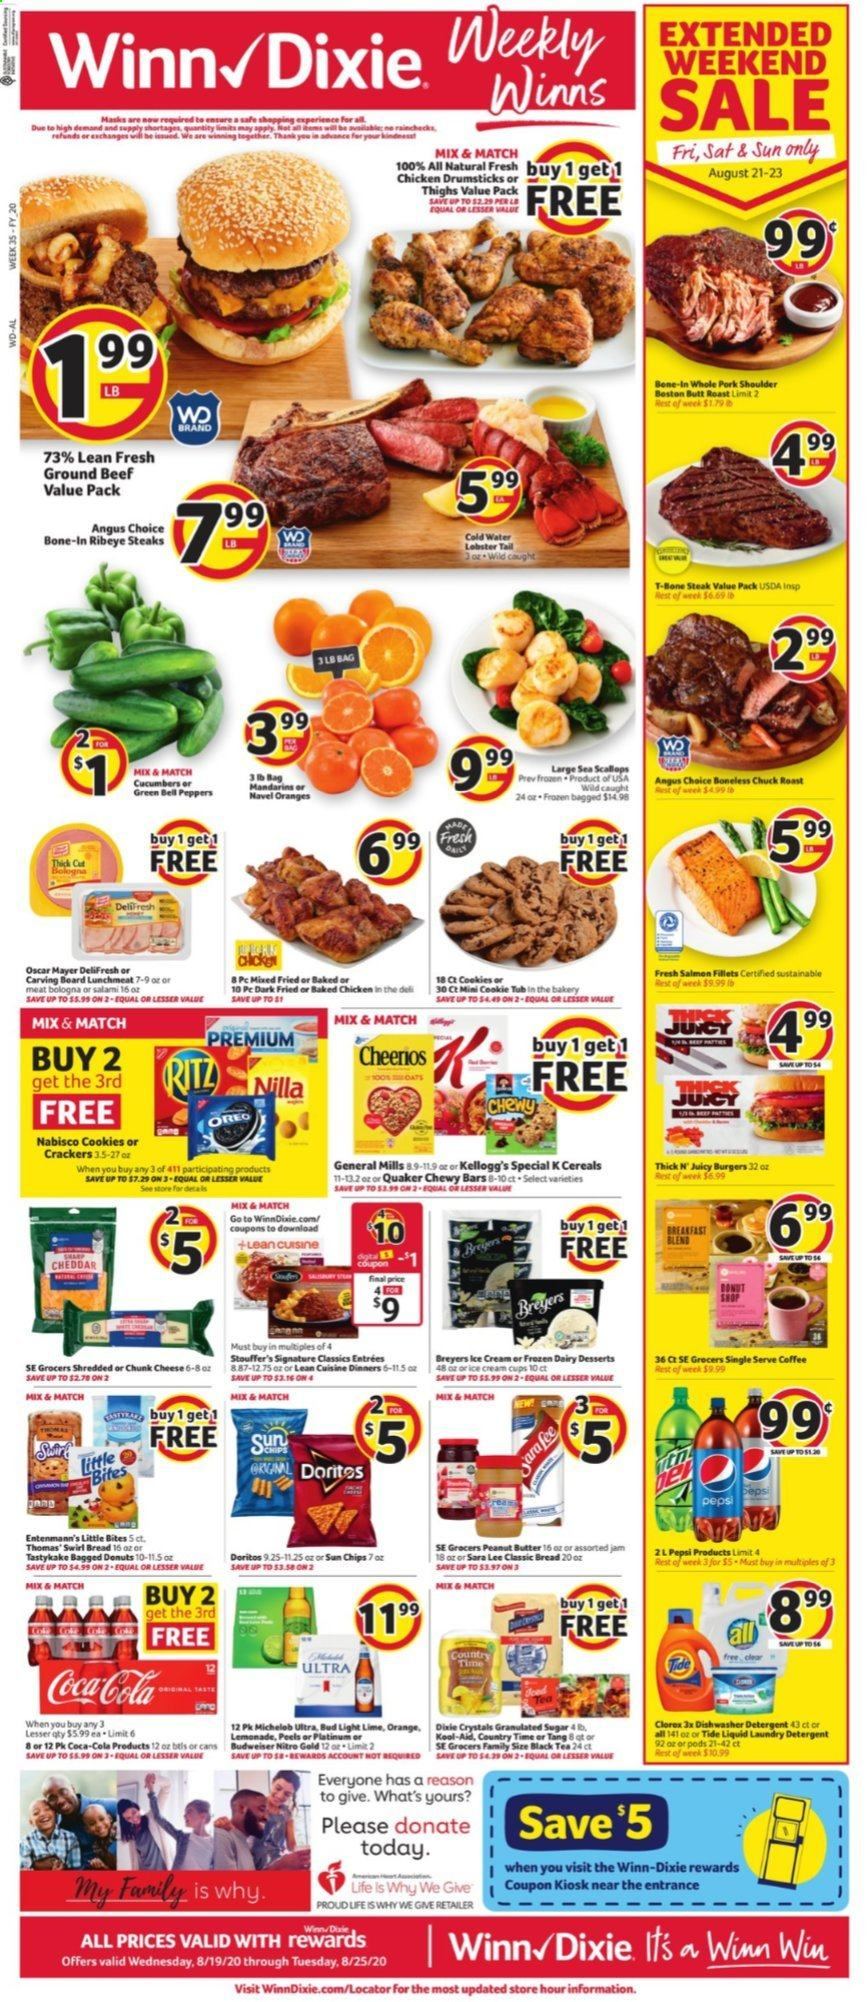 Winn Dixie Flyer - 08.19.2020 - 08.25.2020 - Sales products - bag, beef meat, bell peppers, budweiser, coca-cola, coffee, cookies, crackers, cucumbers, detergent, dishwasher, doritos, granulated sugar, ground beef, lemonade, lobster, lunchmeat, navel oranges, safe, salami, scallops, sugar, t-bone steak, tea, tide, ice cream, jam, pork meat, pork shoulder, cheddar, chicken, chicken drumsticks, peanuts, pepsi, orange, oreo, chips, steak, cheese, donuts, lee, bud light, ritz, bites, tub, liquid, peppers, meat, laundry detergent, lobster tail, roast, burger, donut, oranges. Page 1.